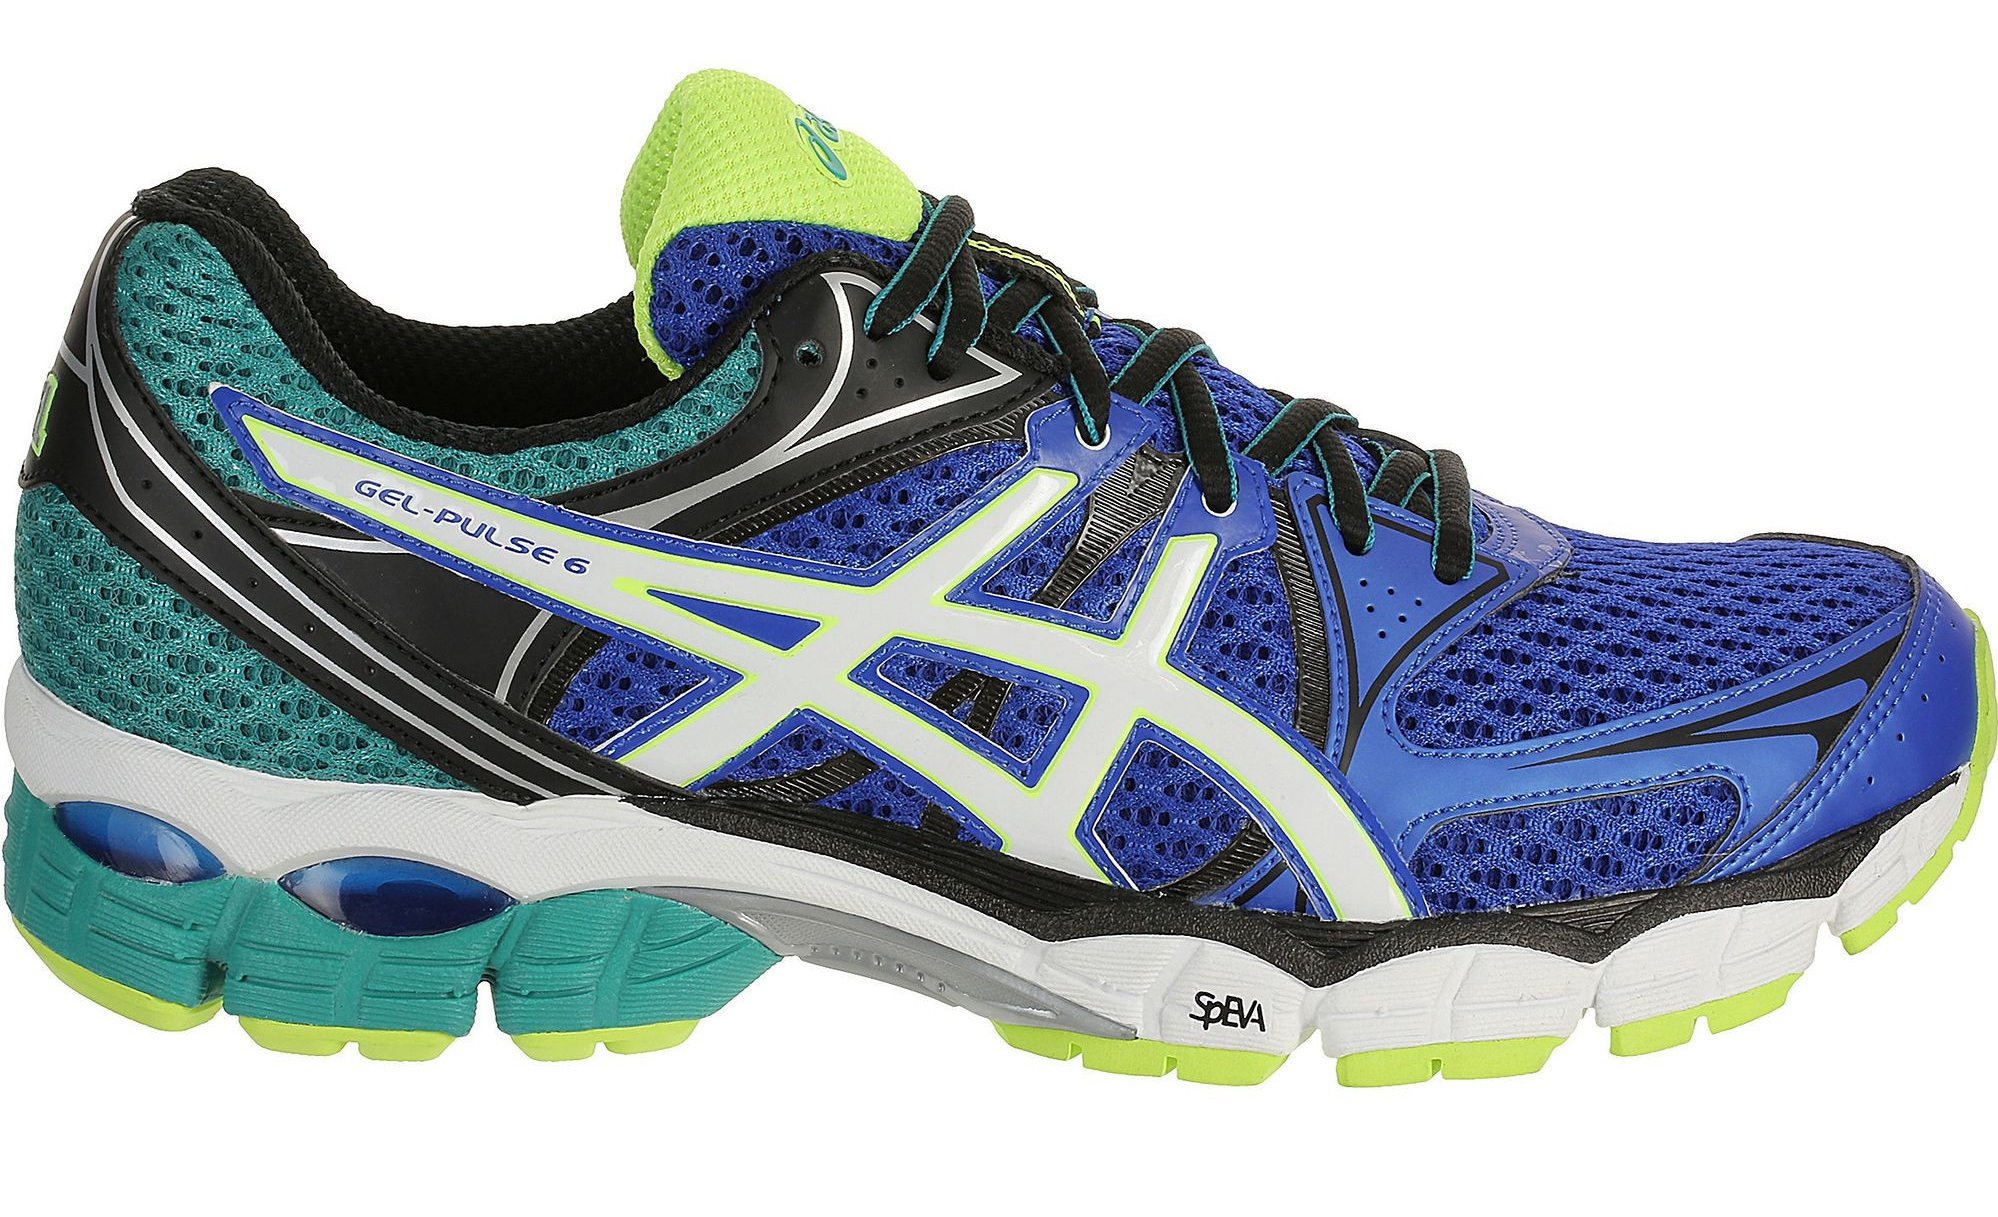 buty do biegania asics decathlon